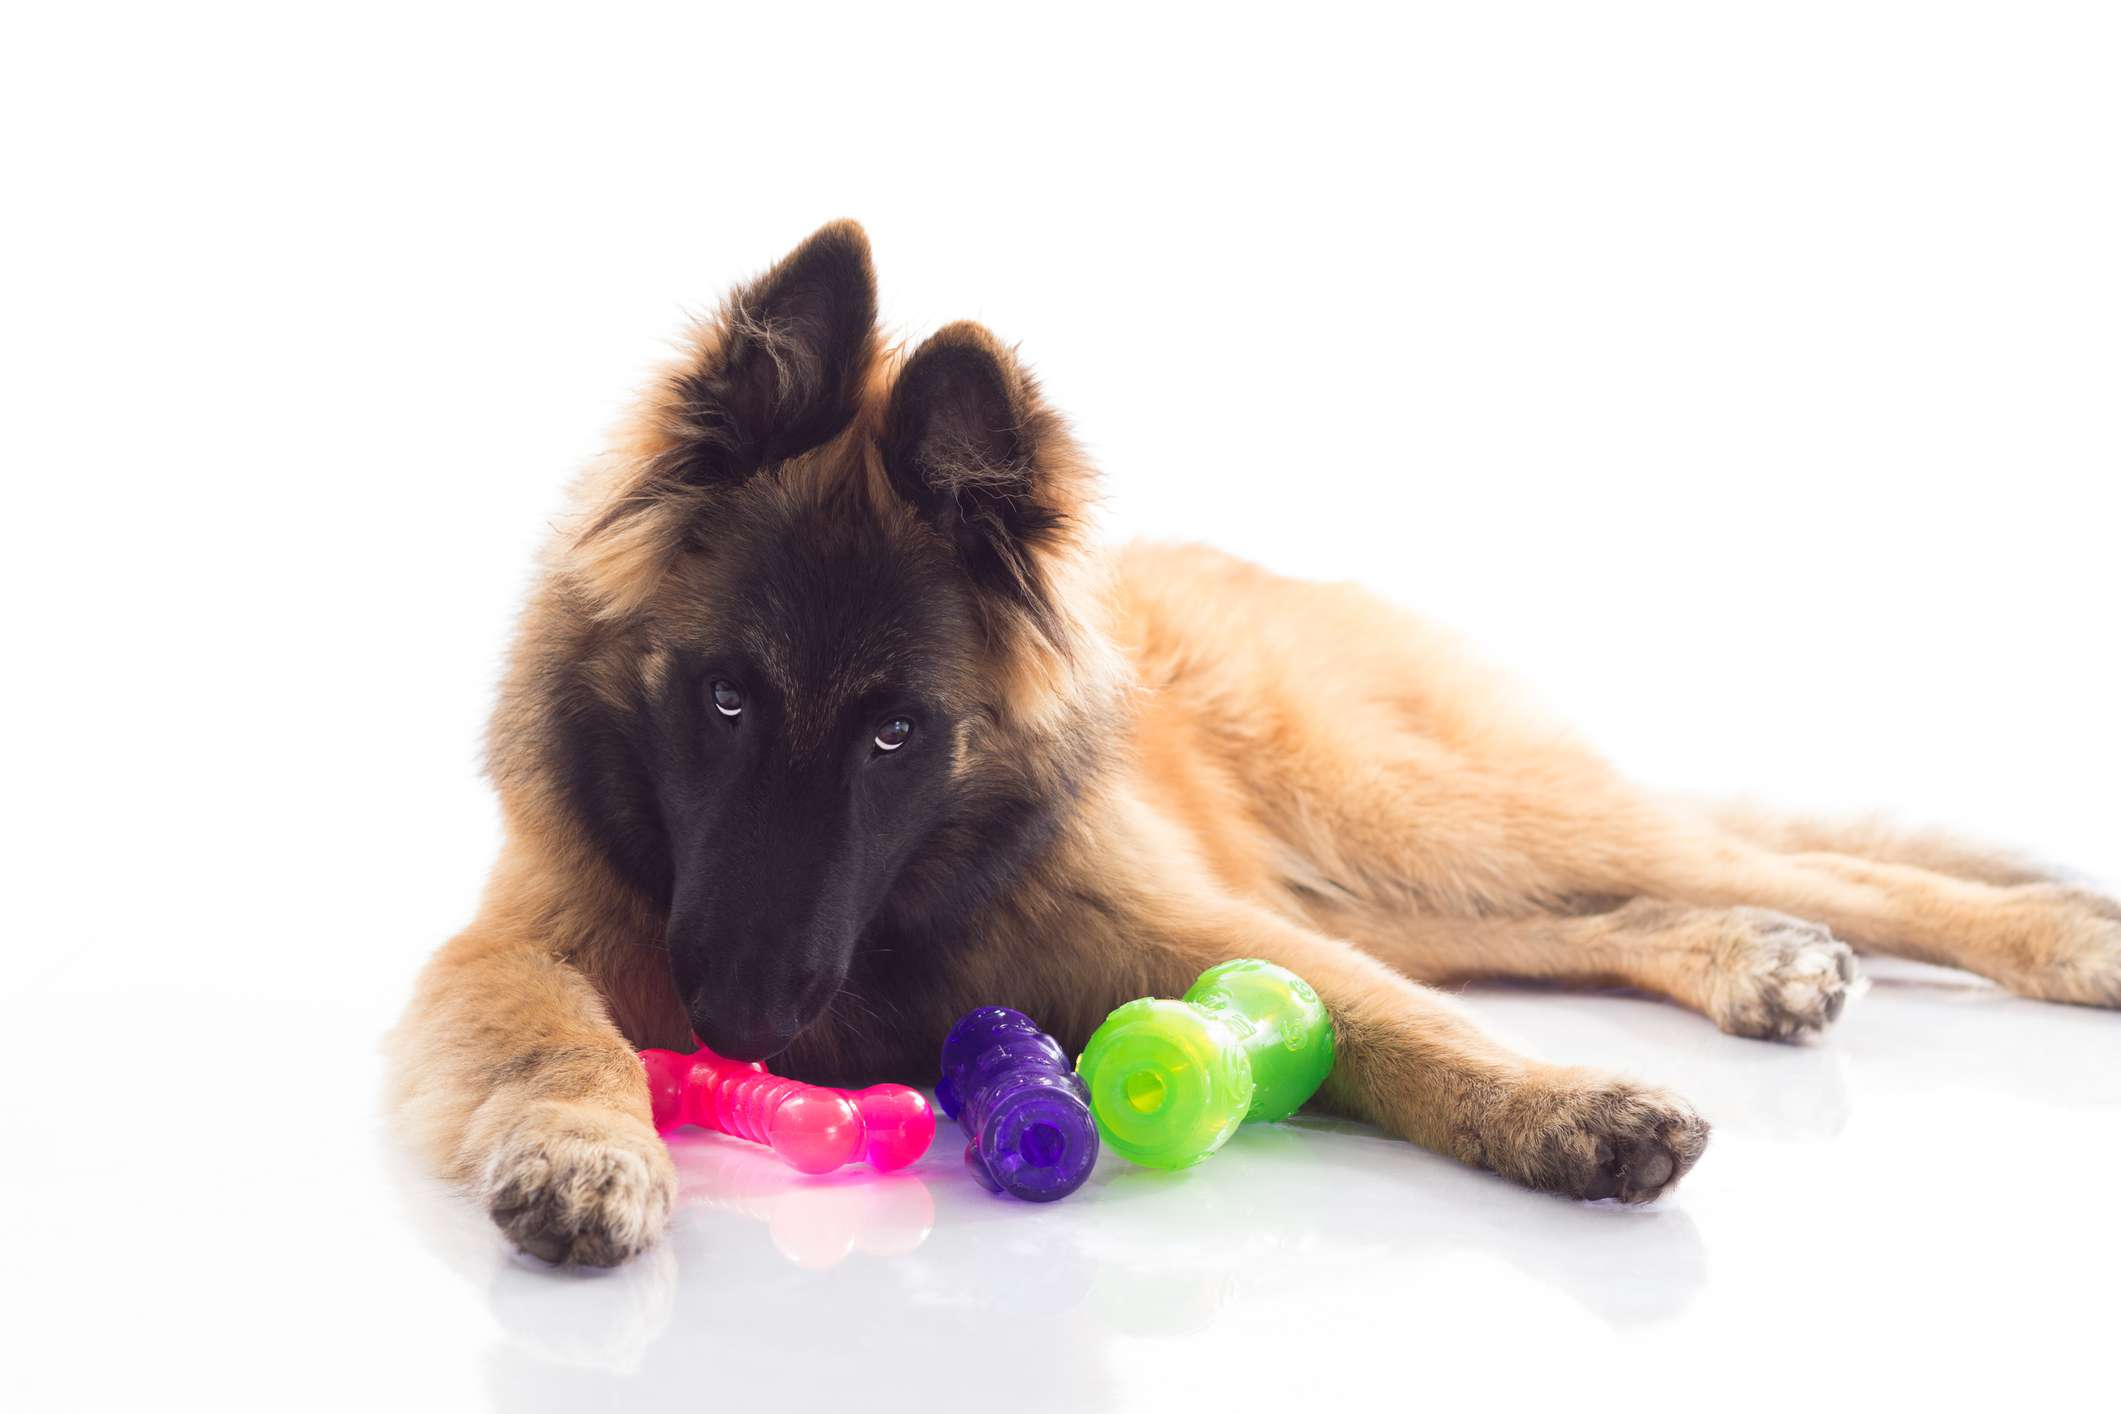 Belgian Tervuren puppy with toys in front of white background.